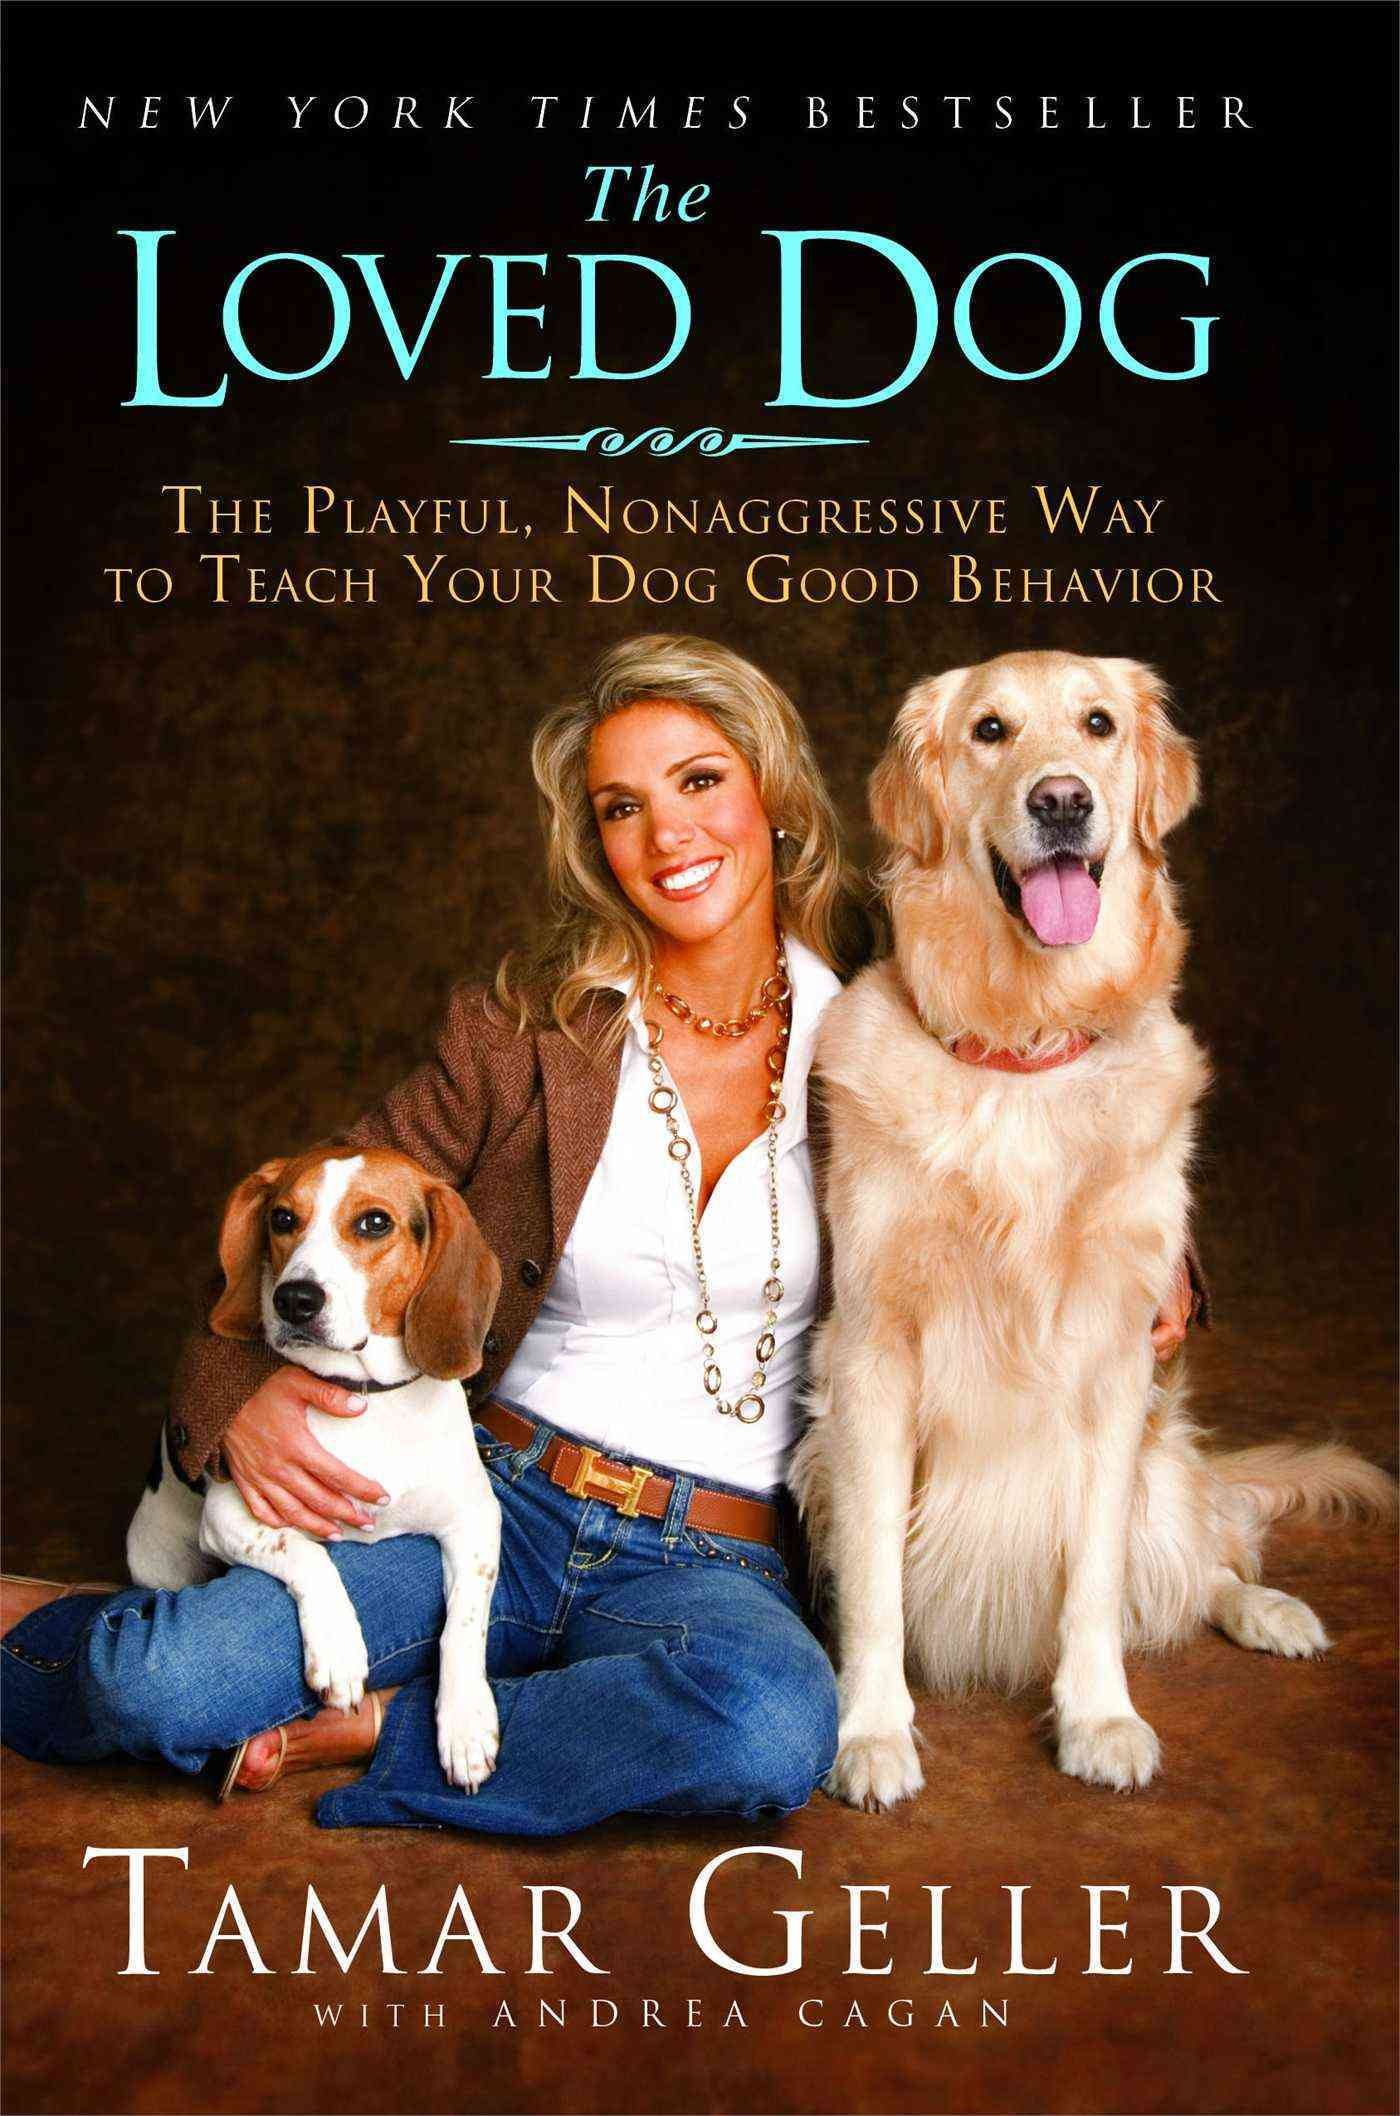 The Loved Dog: The Playful, Nonaggressive Way to Teach Your Dog Good Behavior (Paperback)